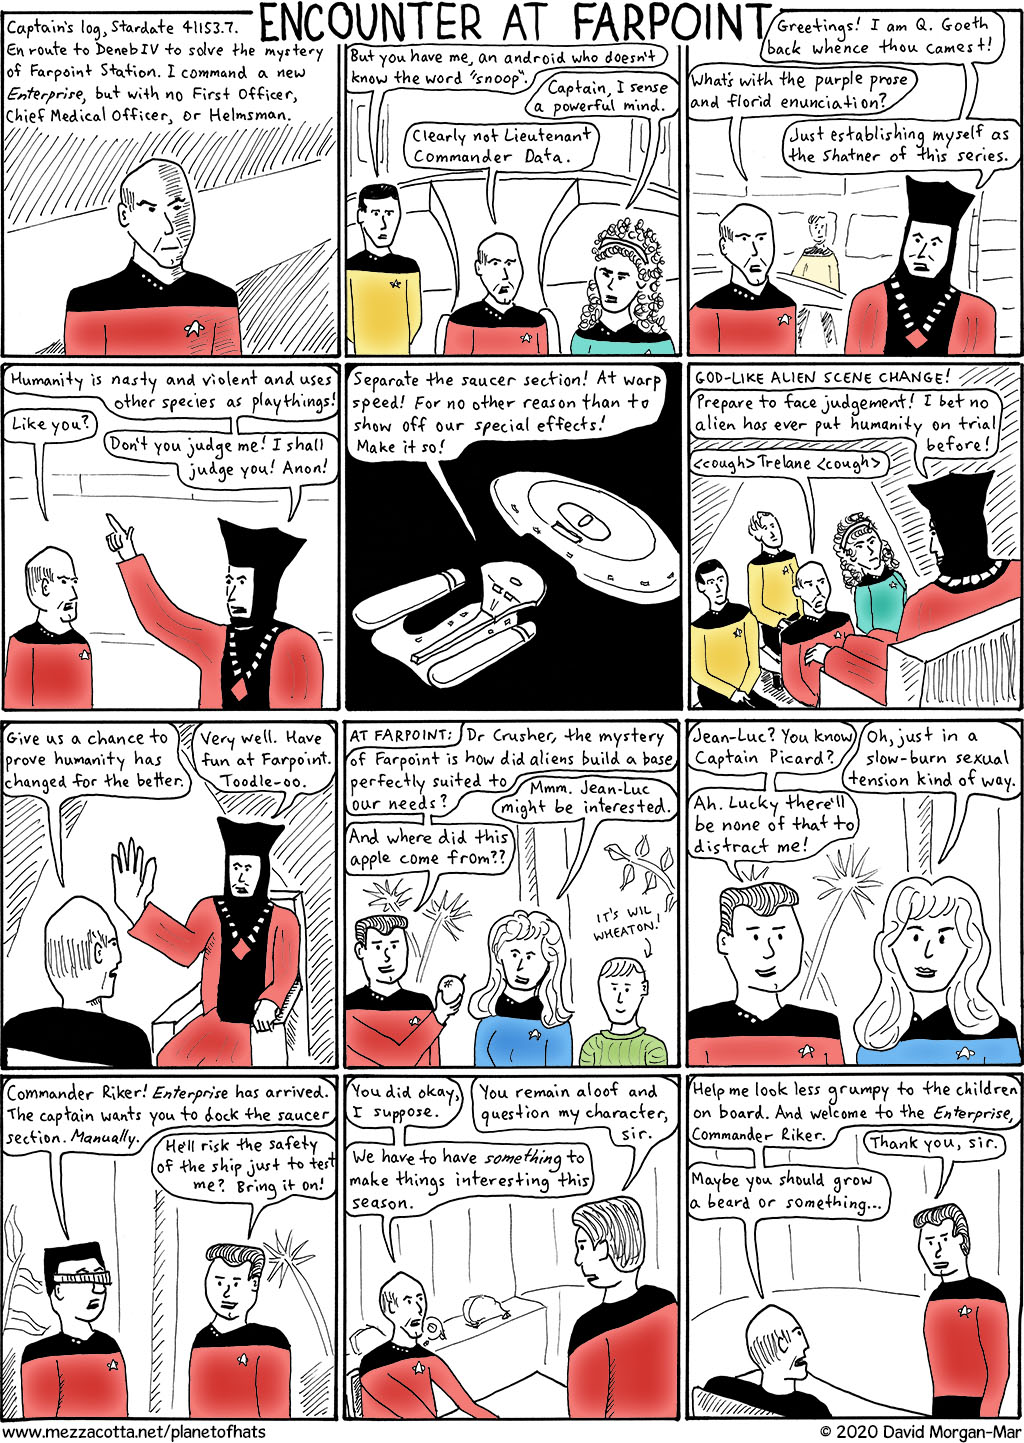 Episode TNG 1.1: Encounter at Farpoint, Part 1